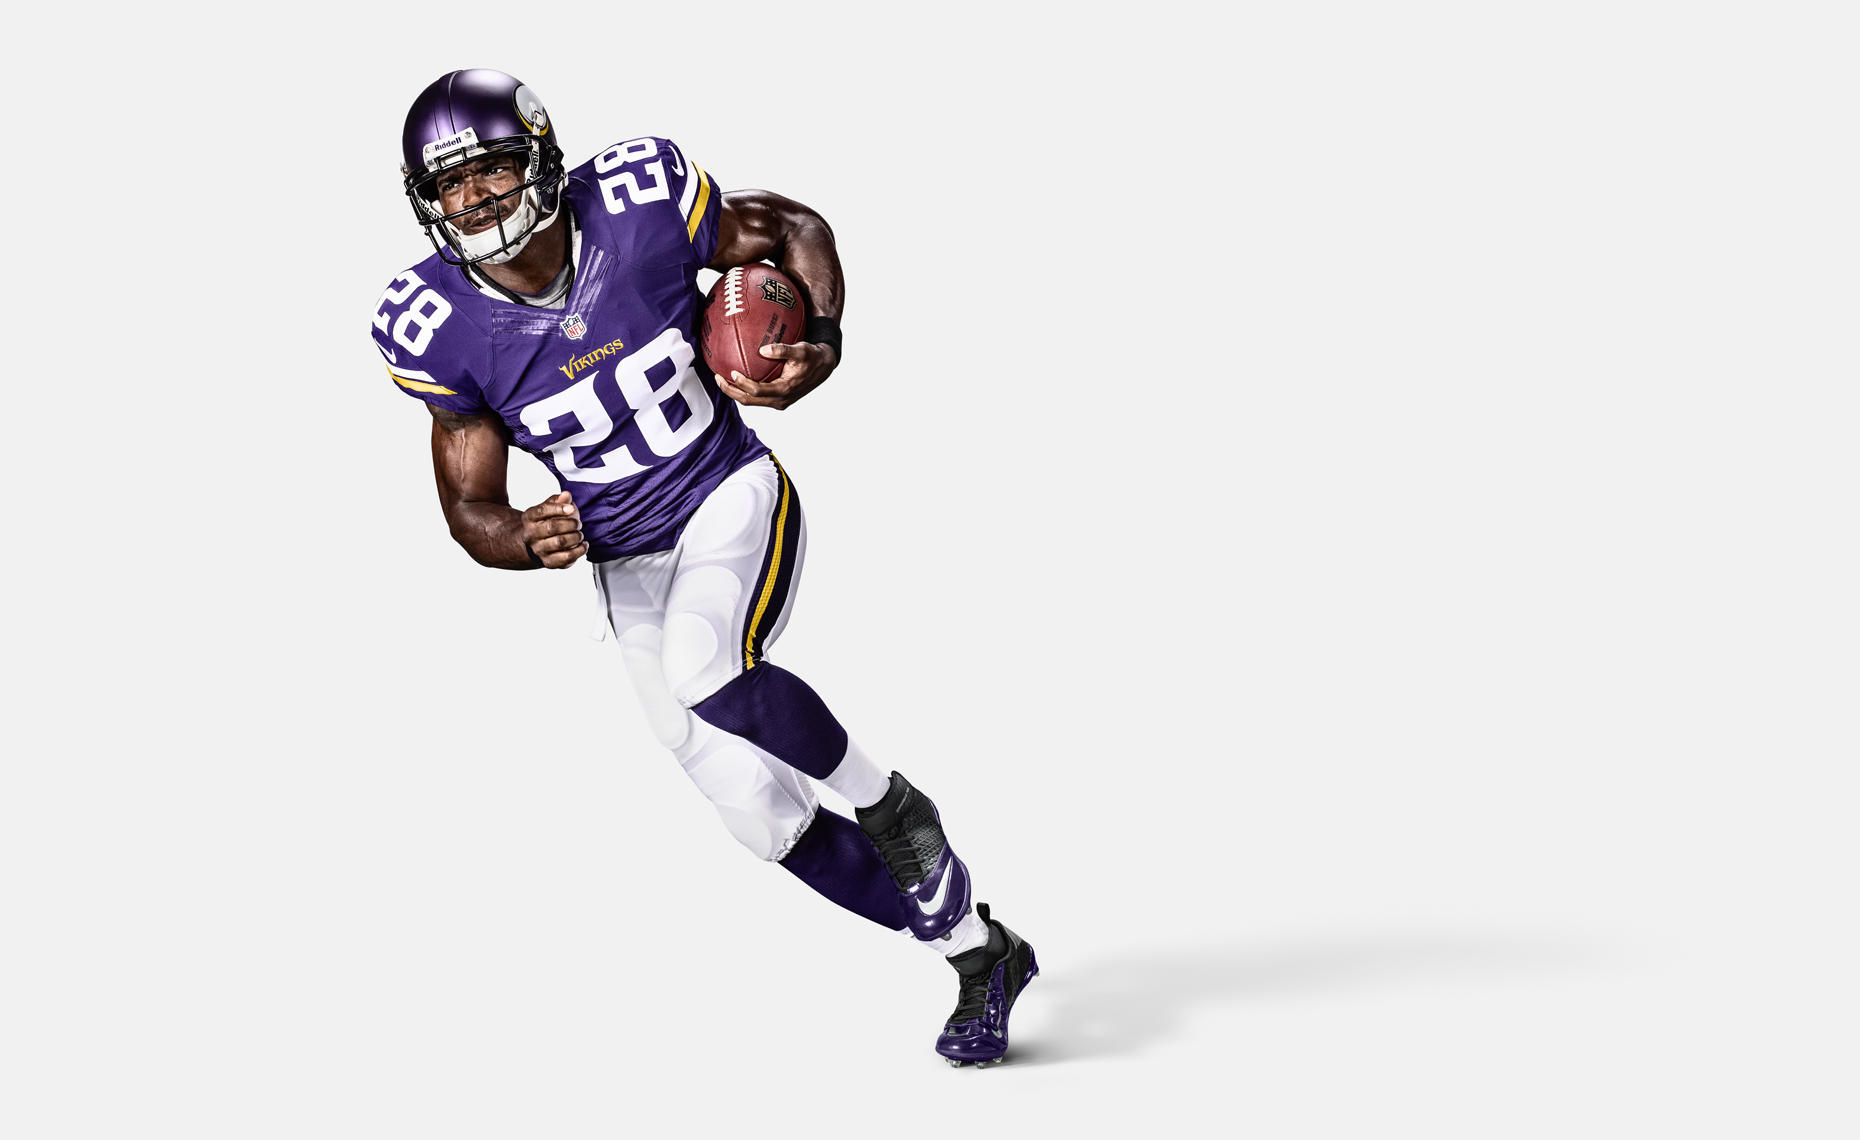 NFL Player Image Retouching